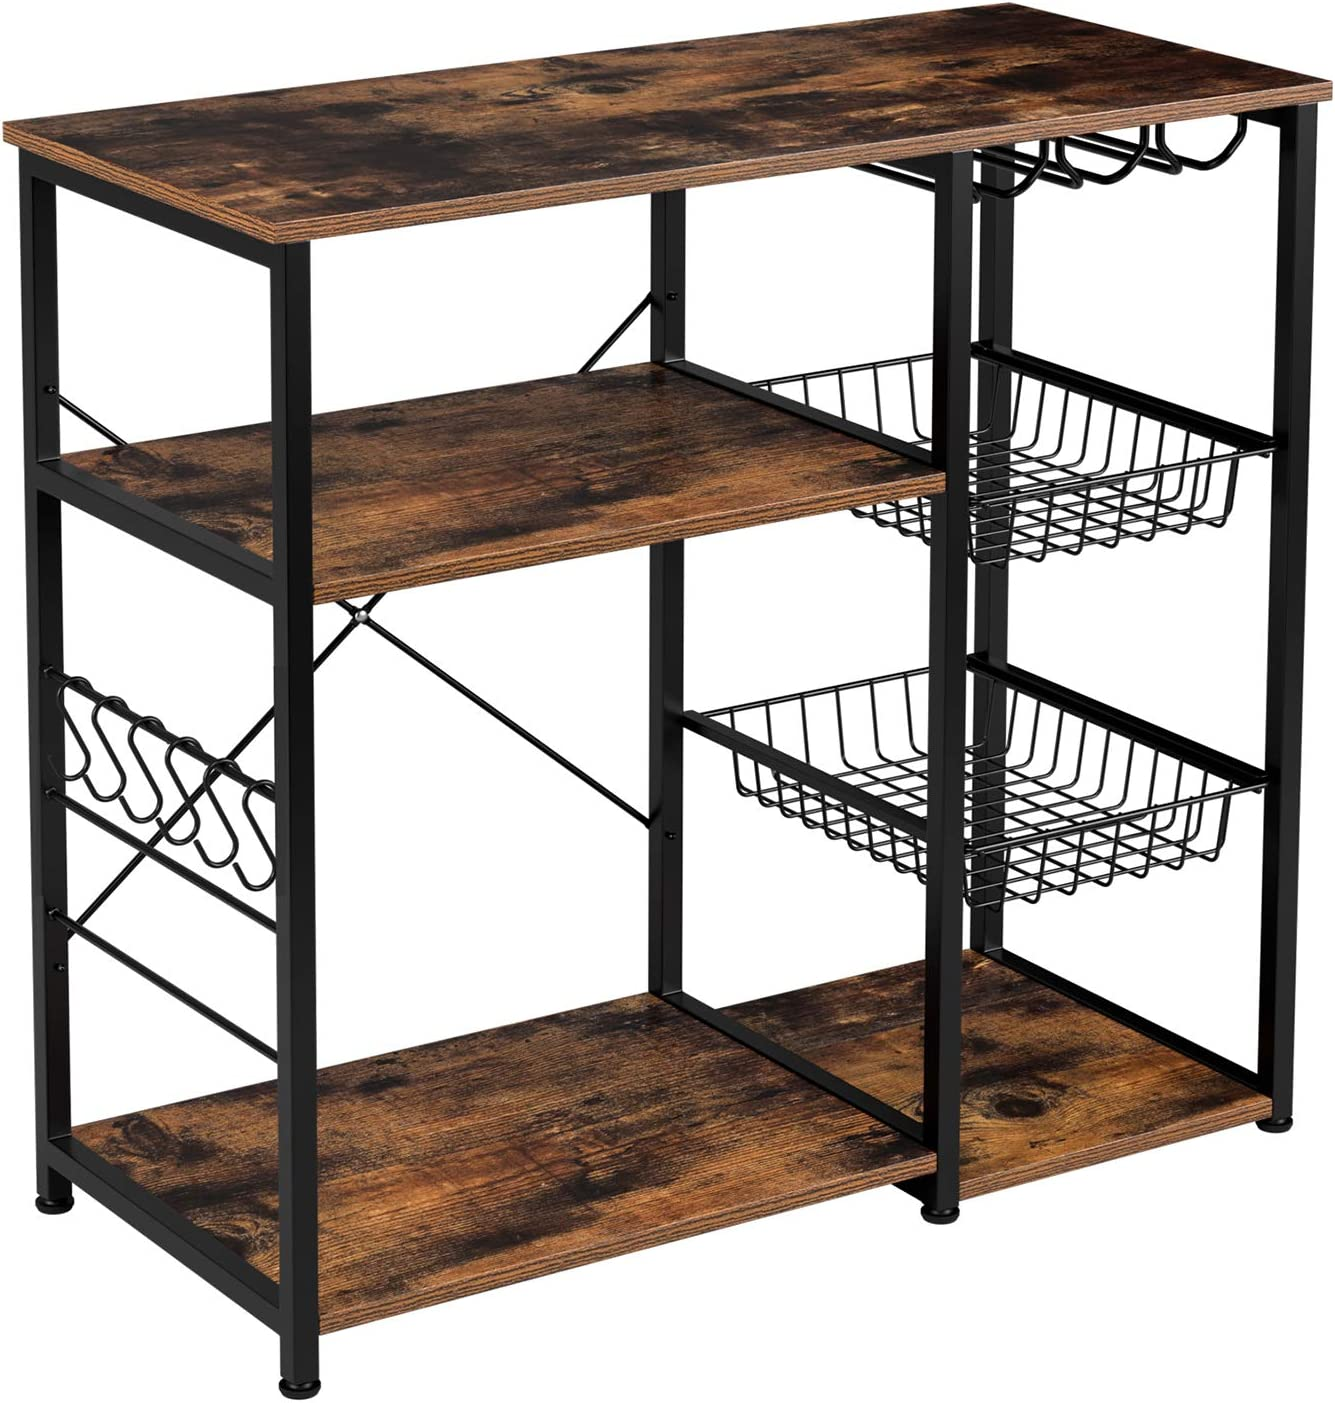 Homfa Kitchen Baker's Rack, 3-Tier Utility Storage Shelf with 2 Slide-Out Cart and Glass Holder, Kitchen Island Rack Workstation Microwave Stand Spice Wine Organizer 35.43 L 15.74 W 33.26 H inches